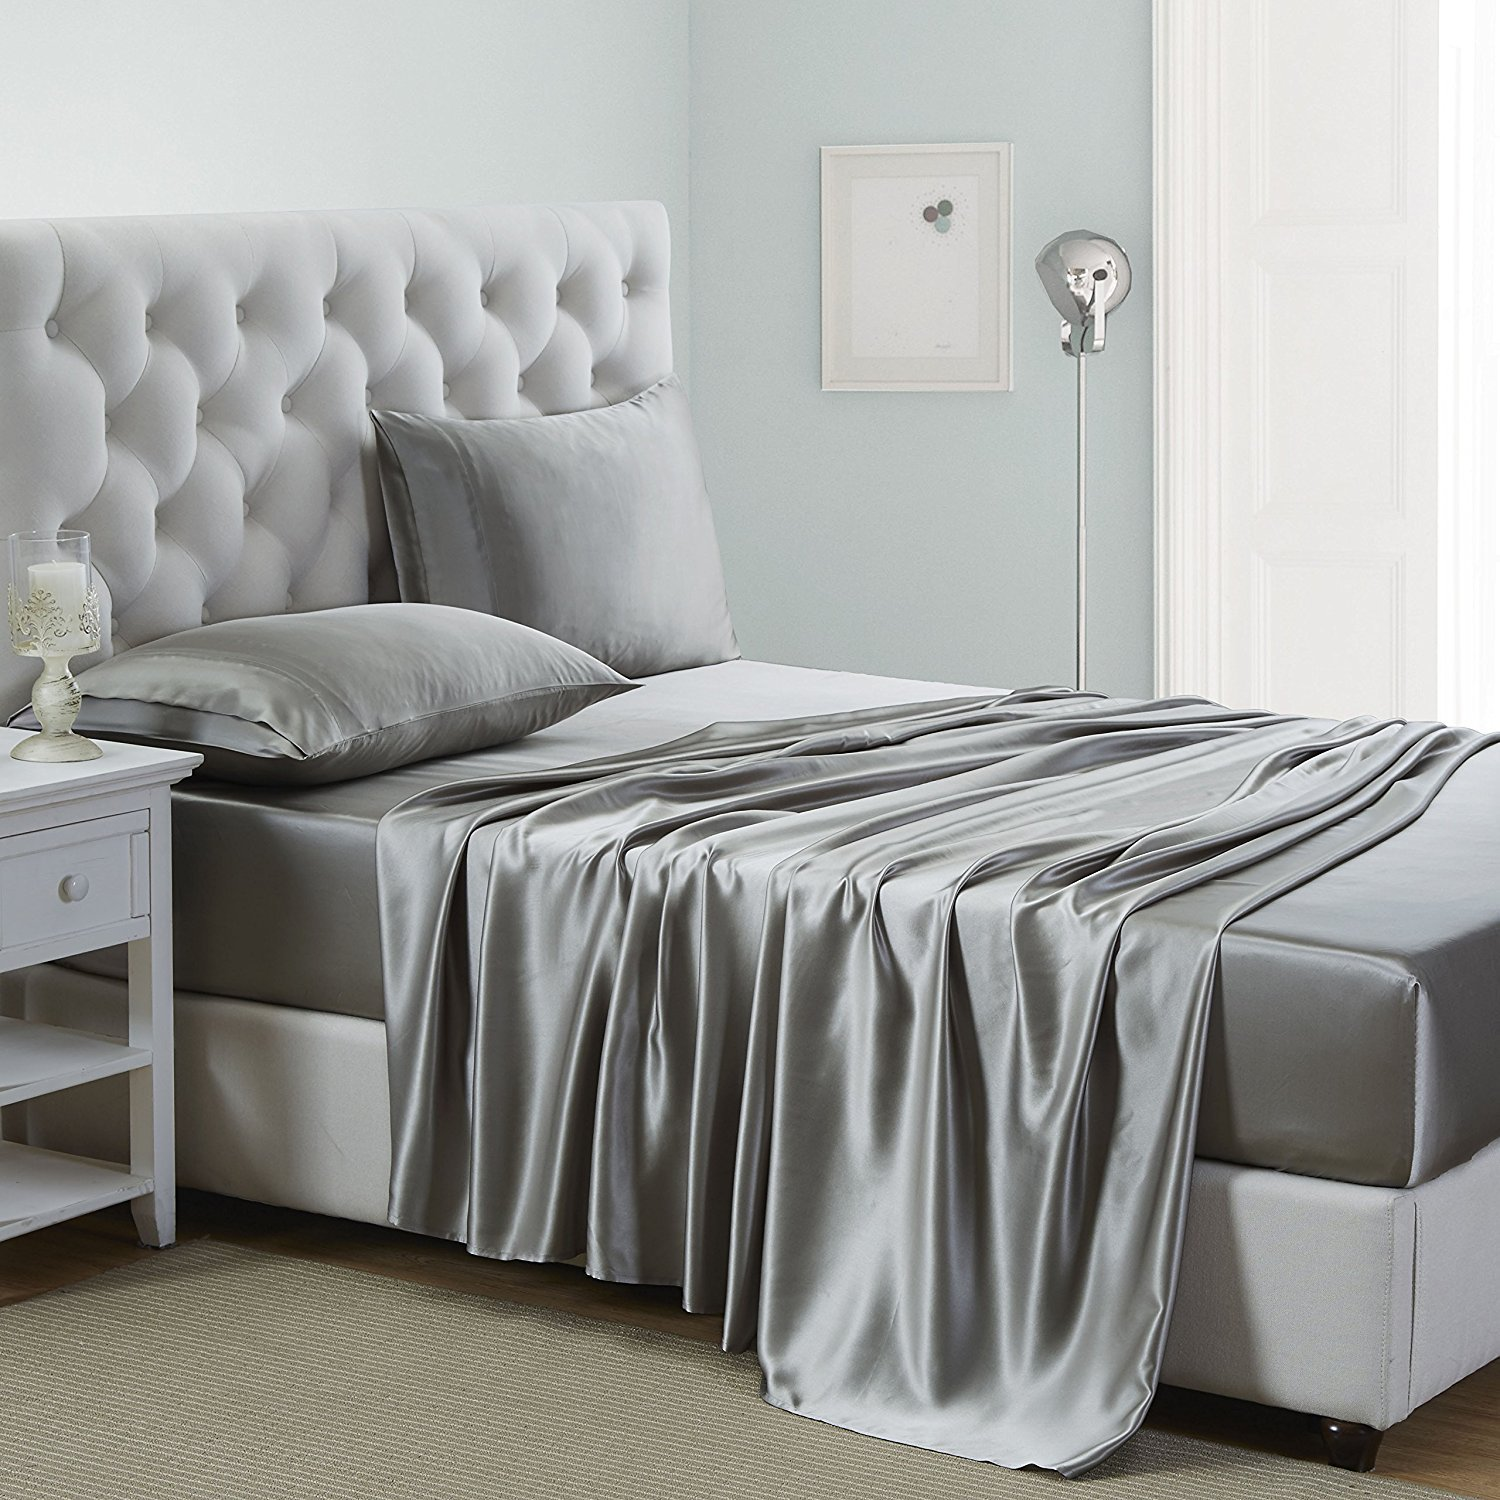 OOSilk 4 Pieces 100% Mulberry Charmeuse Silk Bed Sheet Set (Queen, Silver Grey)